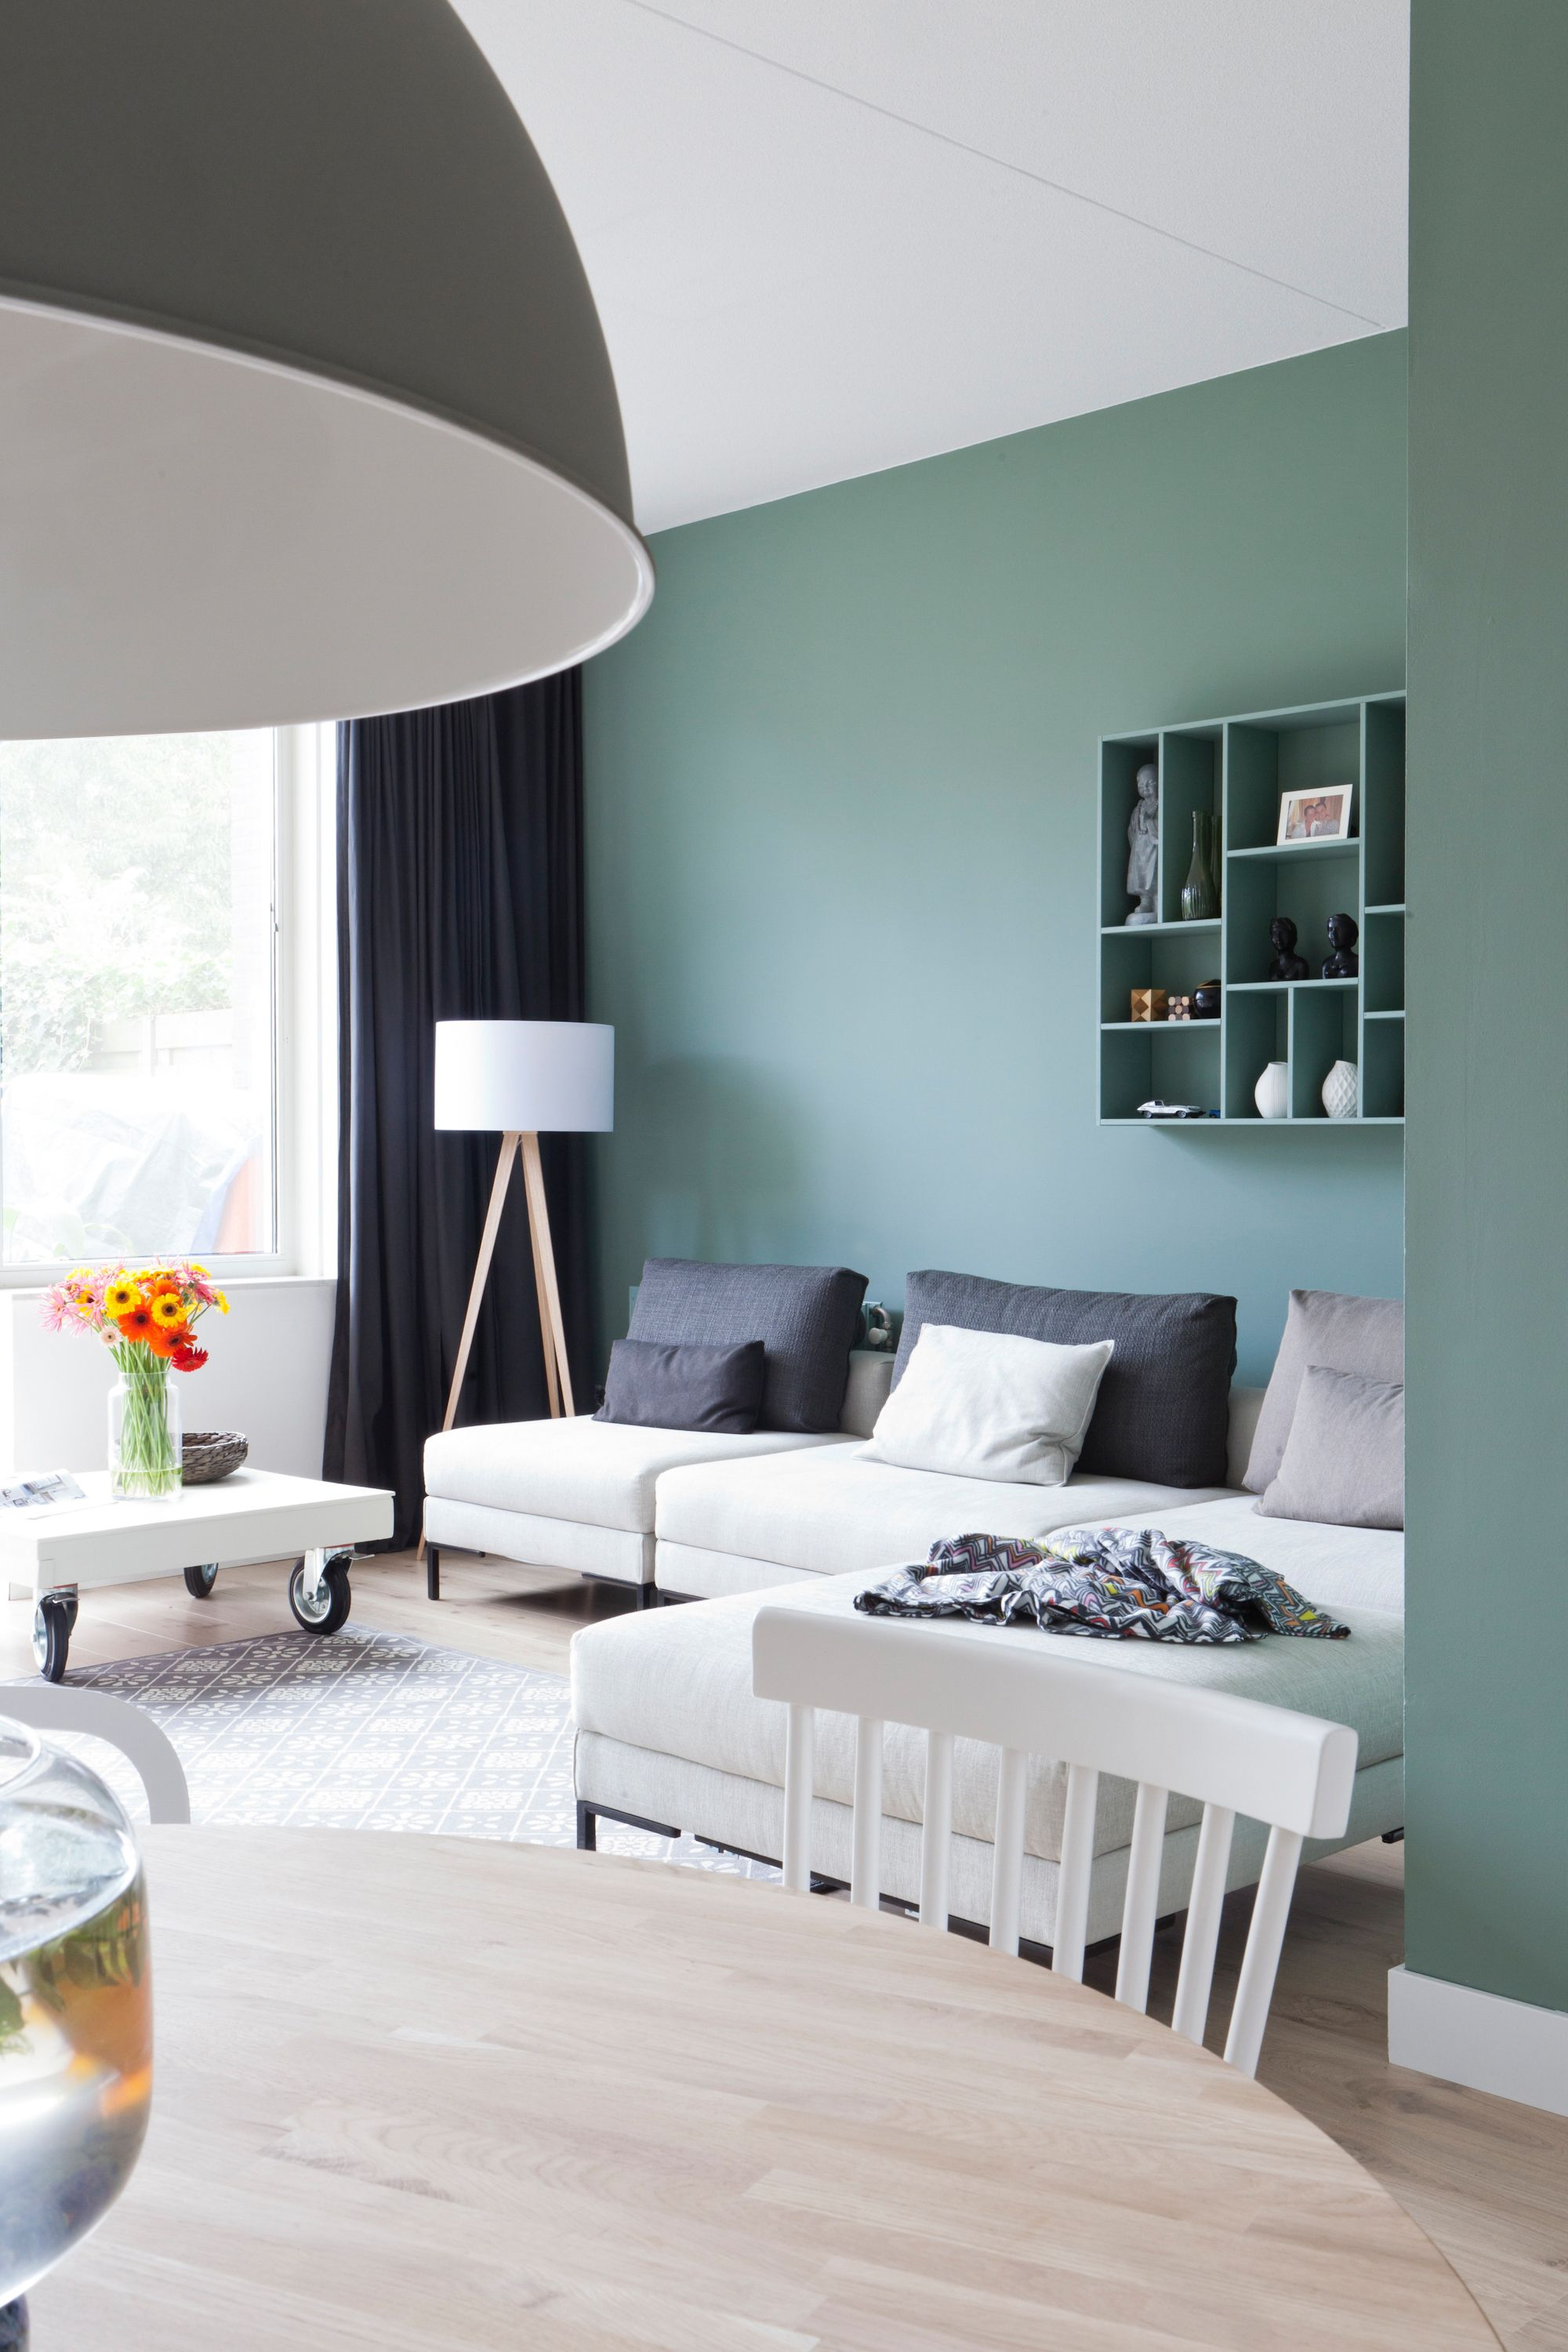 Moderne Interieur Kleuren Modern Turquoise Green Grey And White Design Dutch Vtwonen